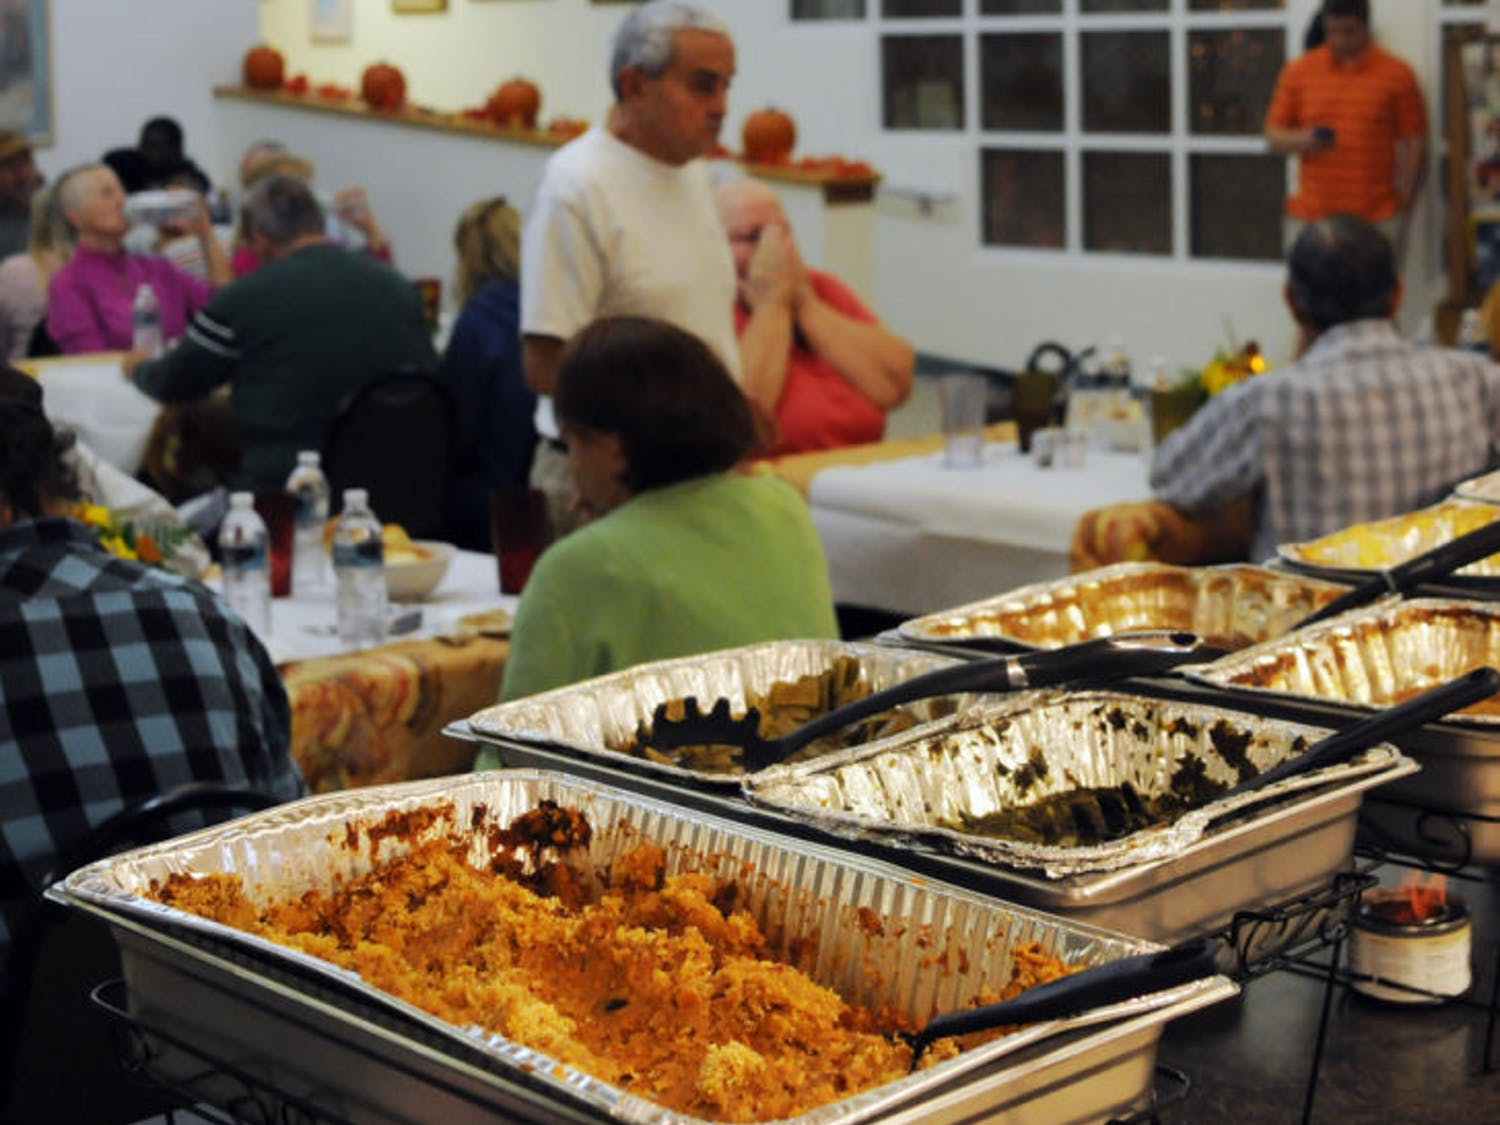 Guests dine at a Thanksgiving-style feast Thursday evening at Gainesville's American Cancer Society Winn-Dixie Hope Lodge. Winn-Dixie hosted the dinner.